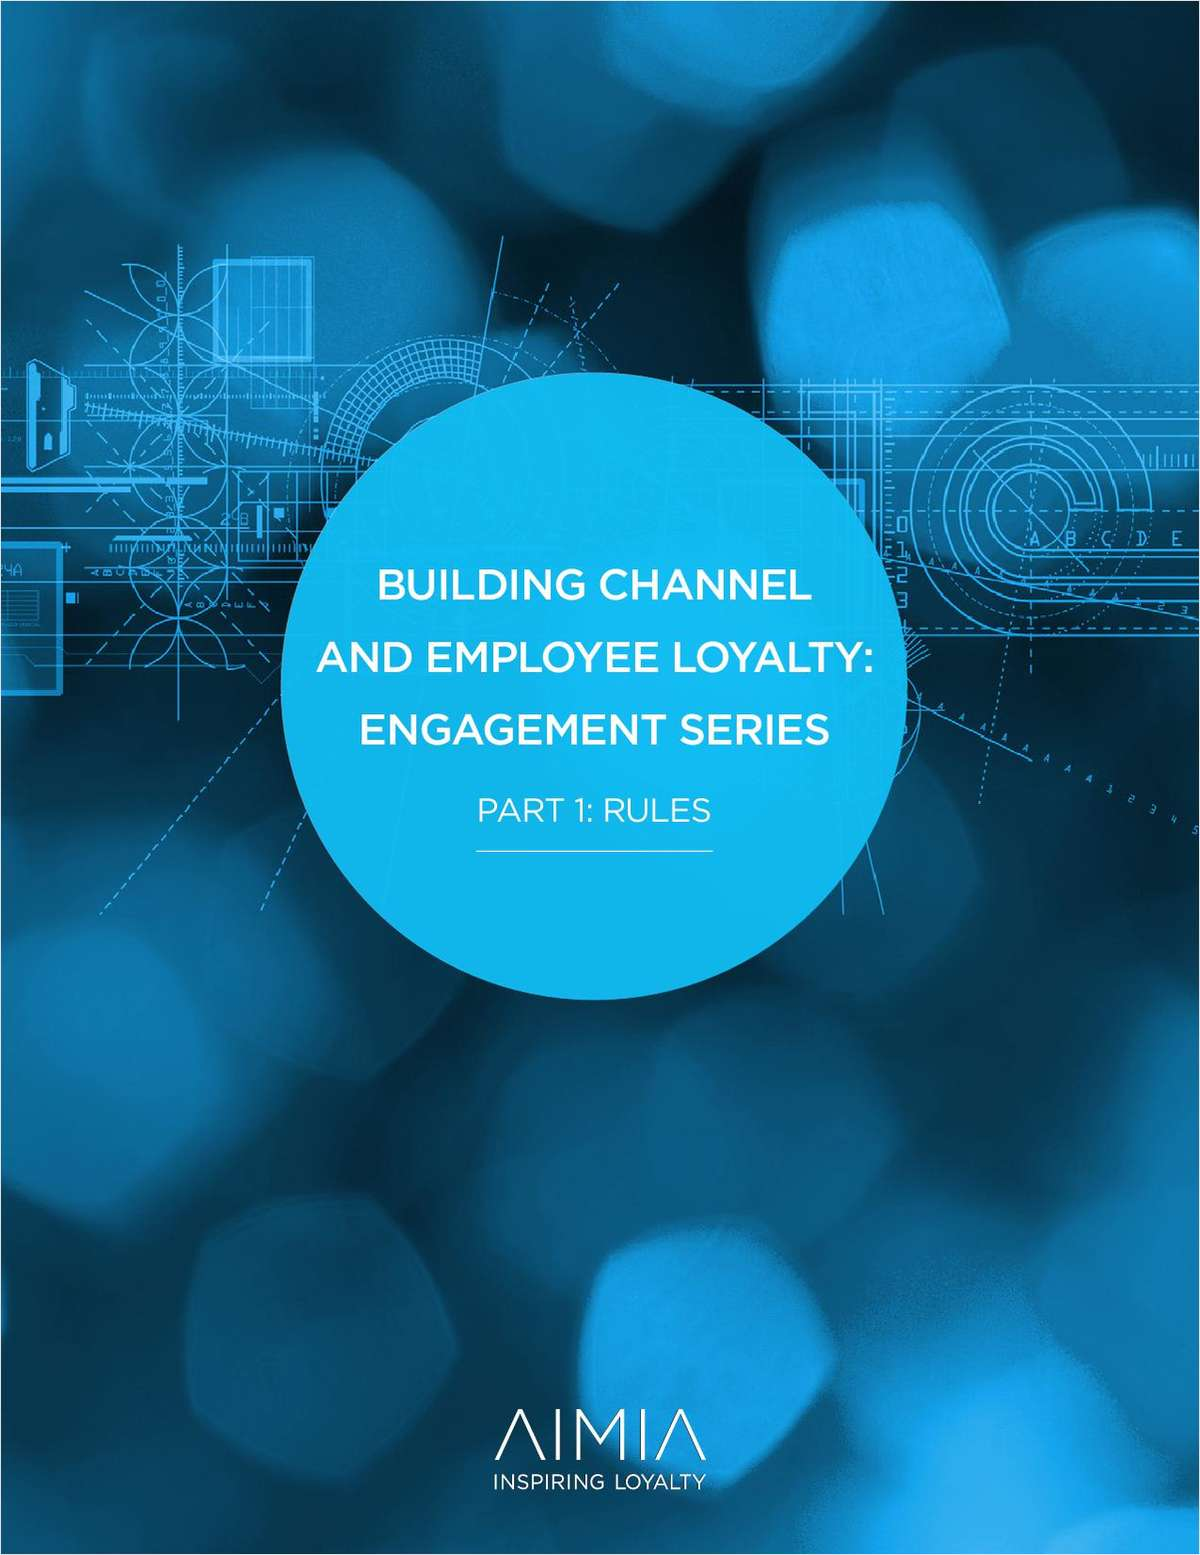 Building Channel and Employee Loyalty: Engagement Series  Part 1: Rules